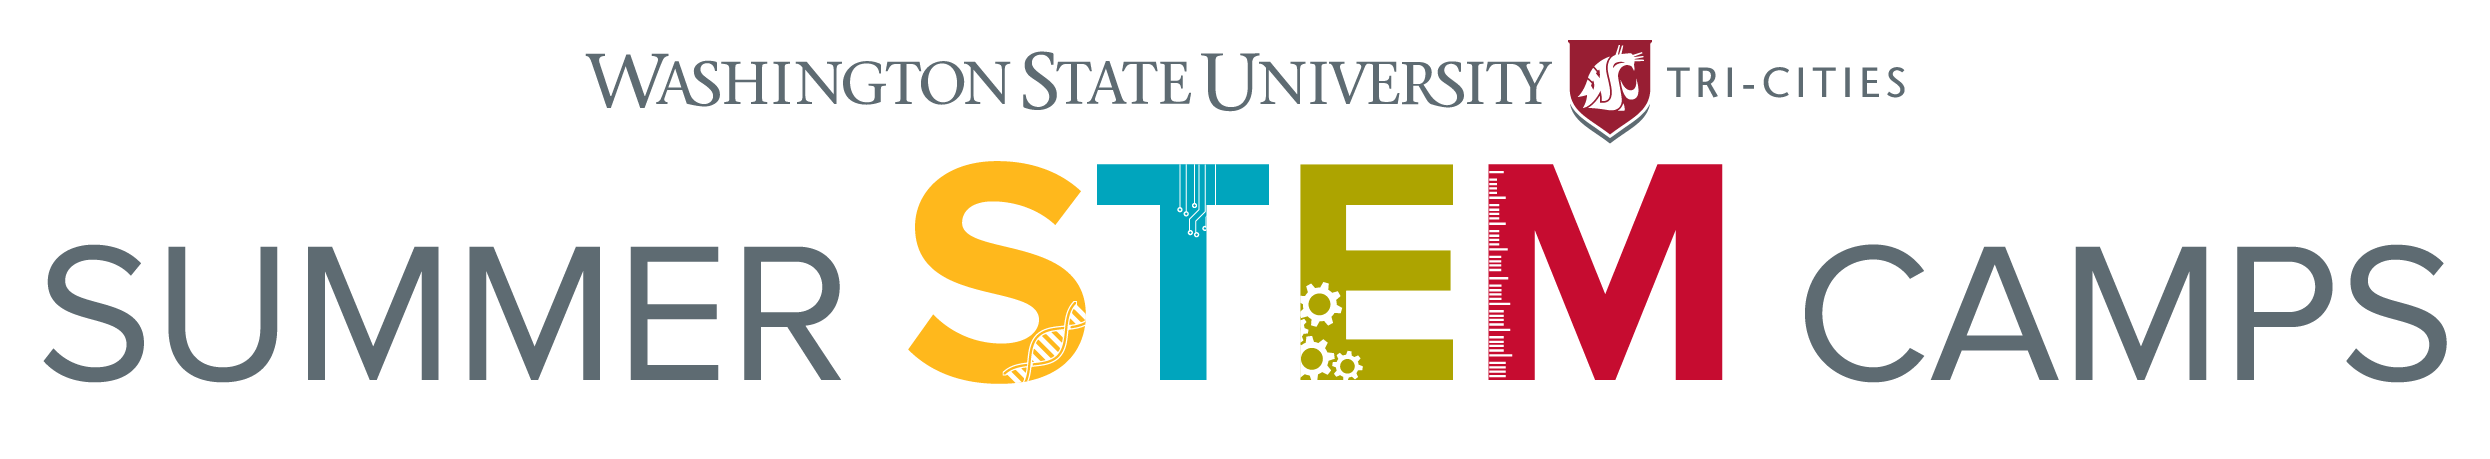 WSU Tri-Cities Summer STEM Camps